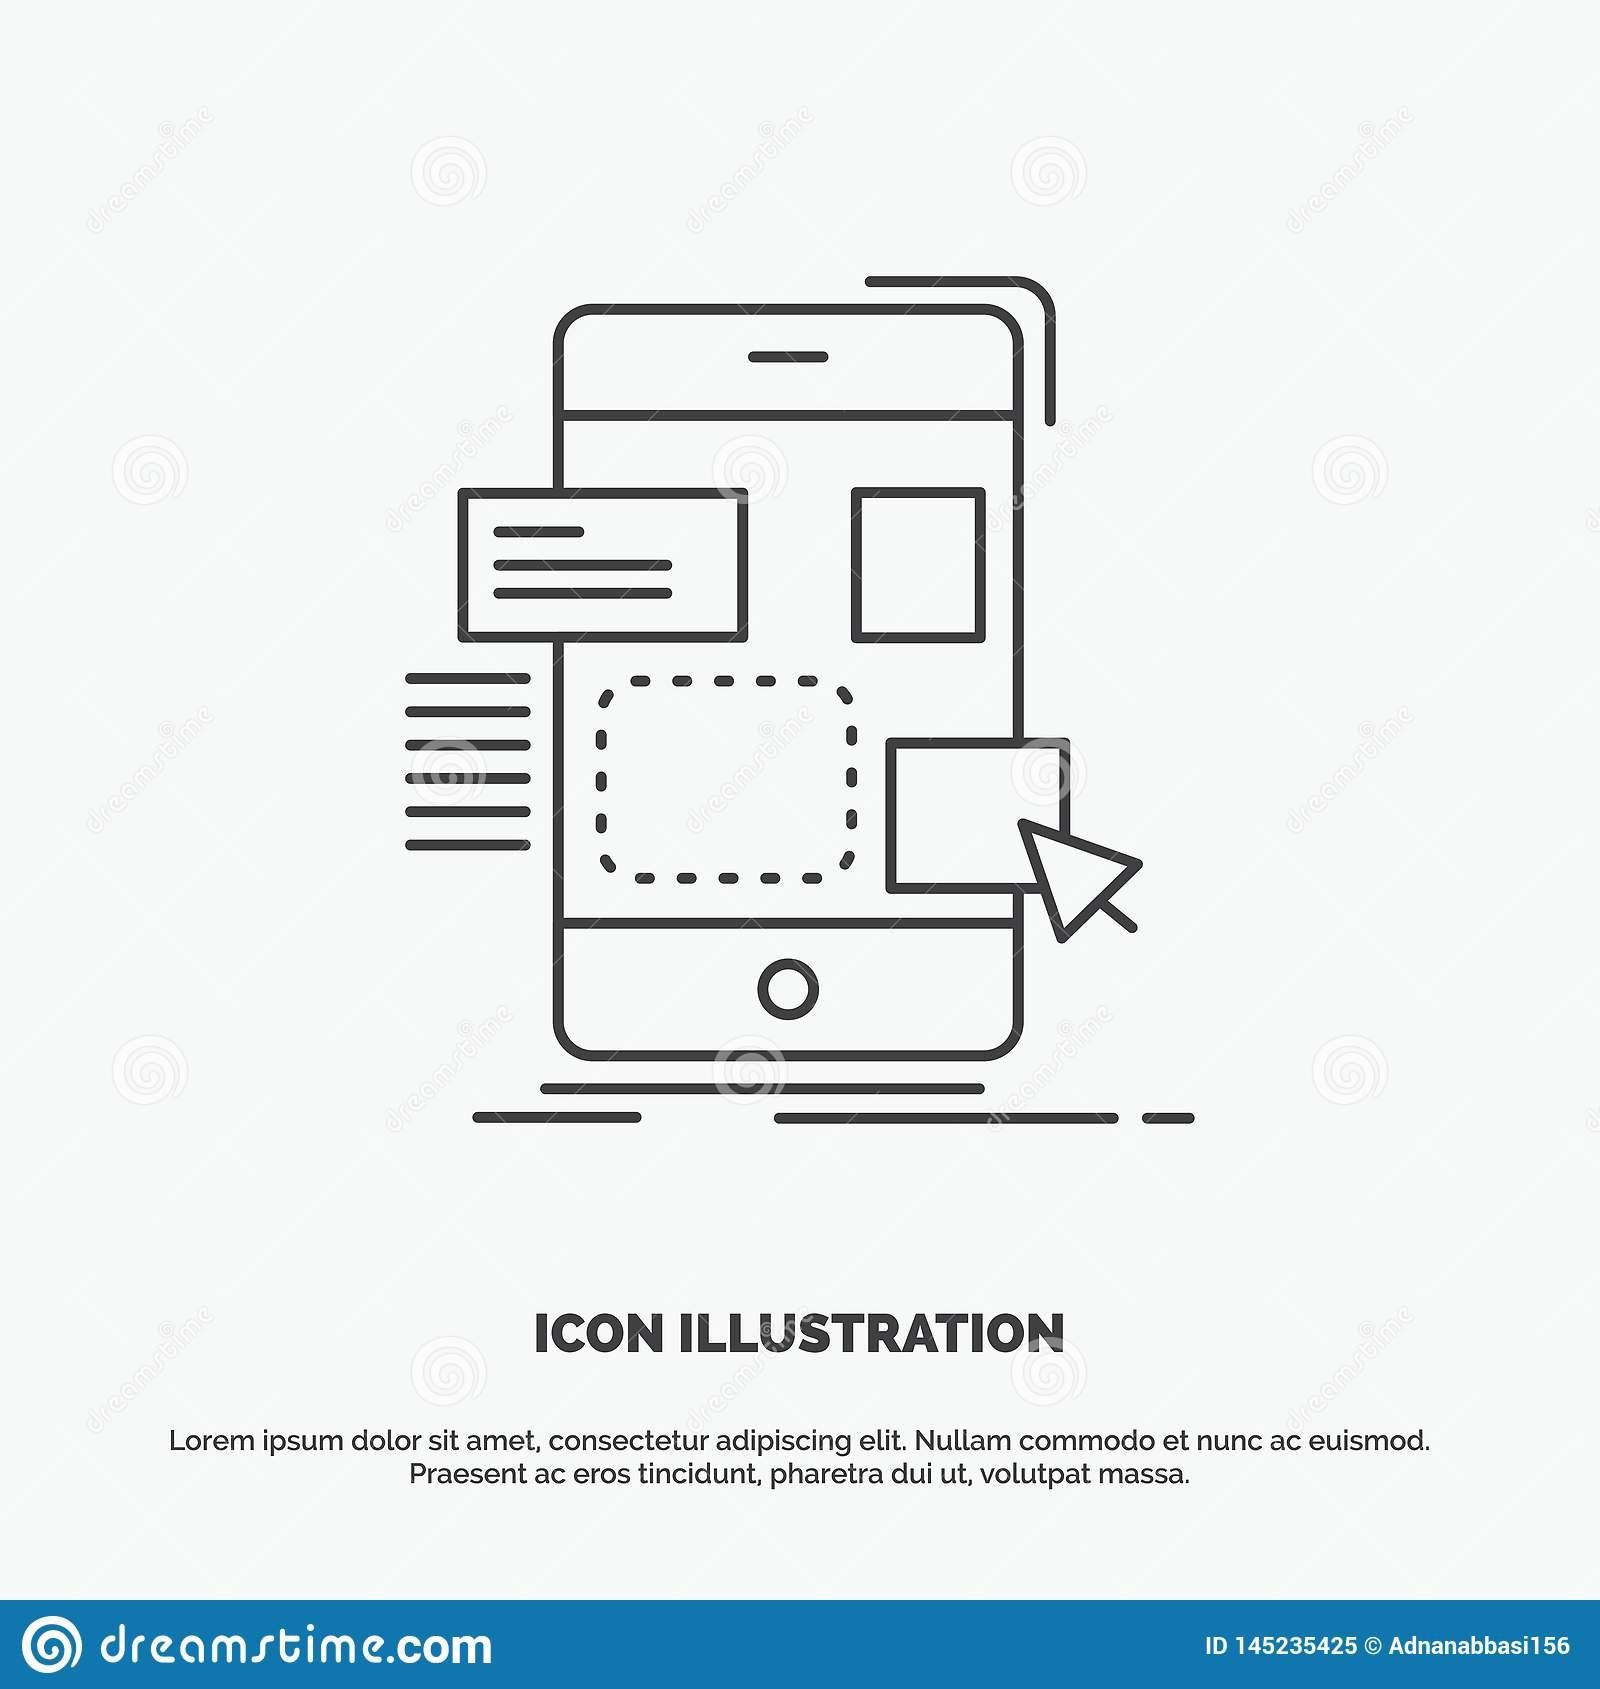 drag, mobile, design, ui, ux Icon. Line vector gray symbol for UI and UX, website or mobile application